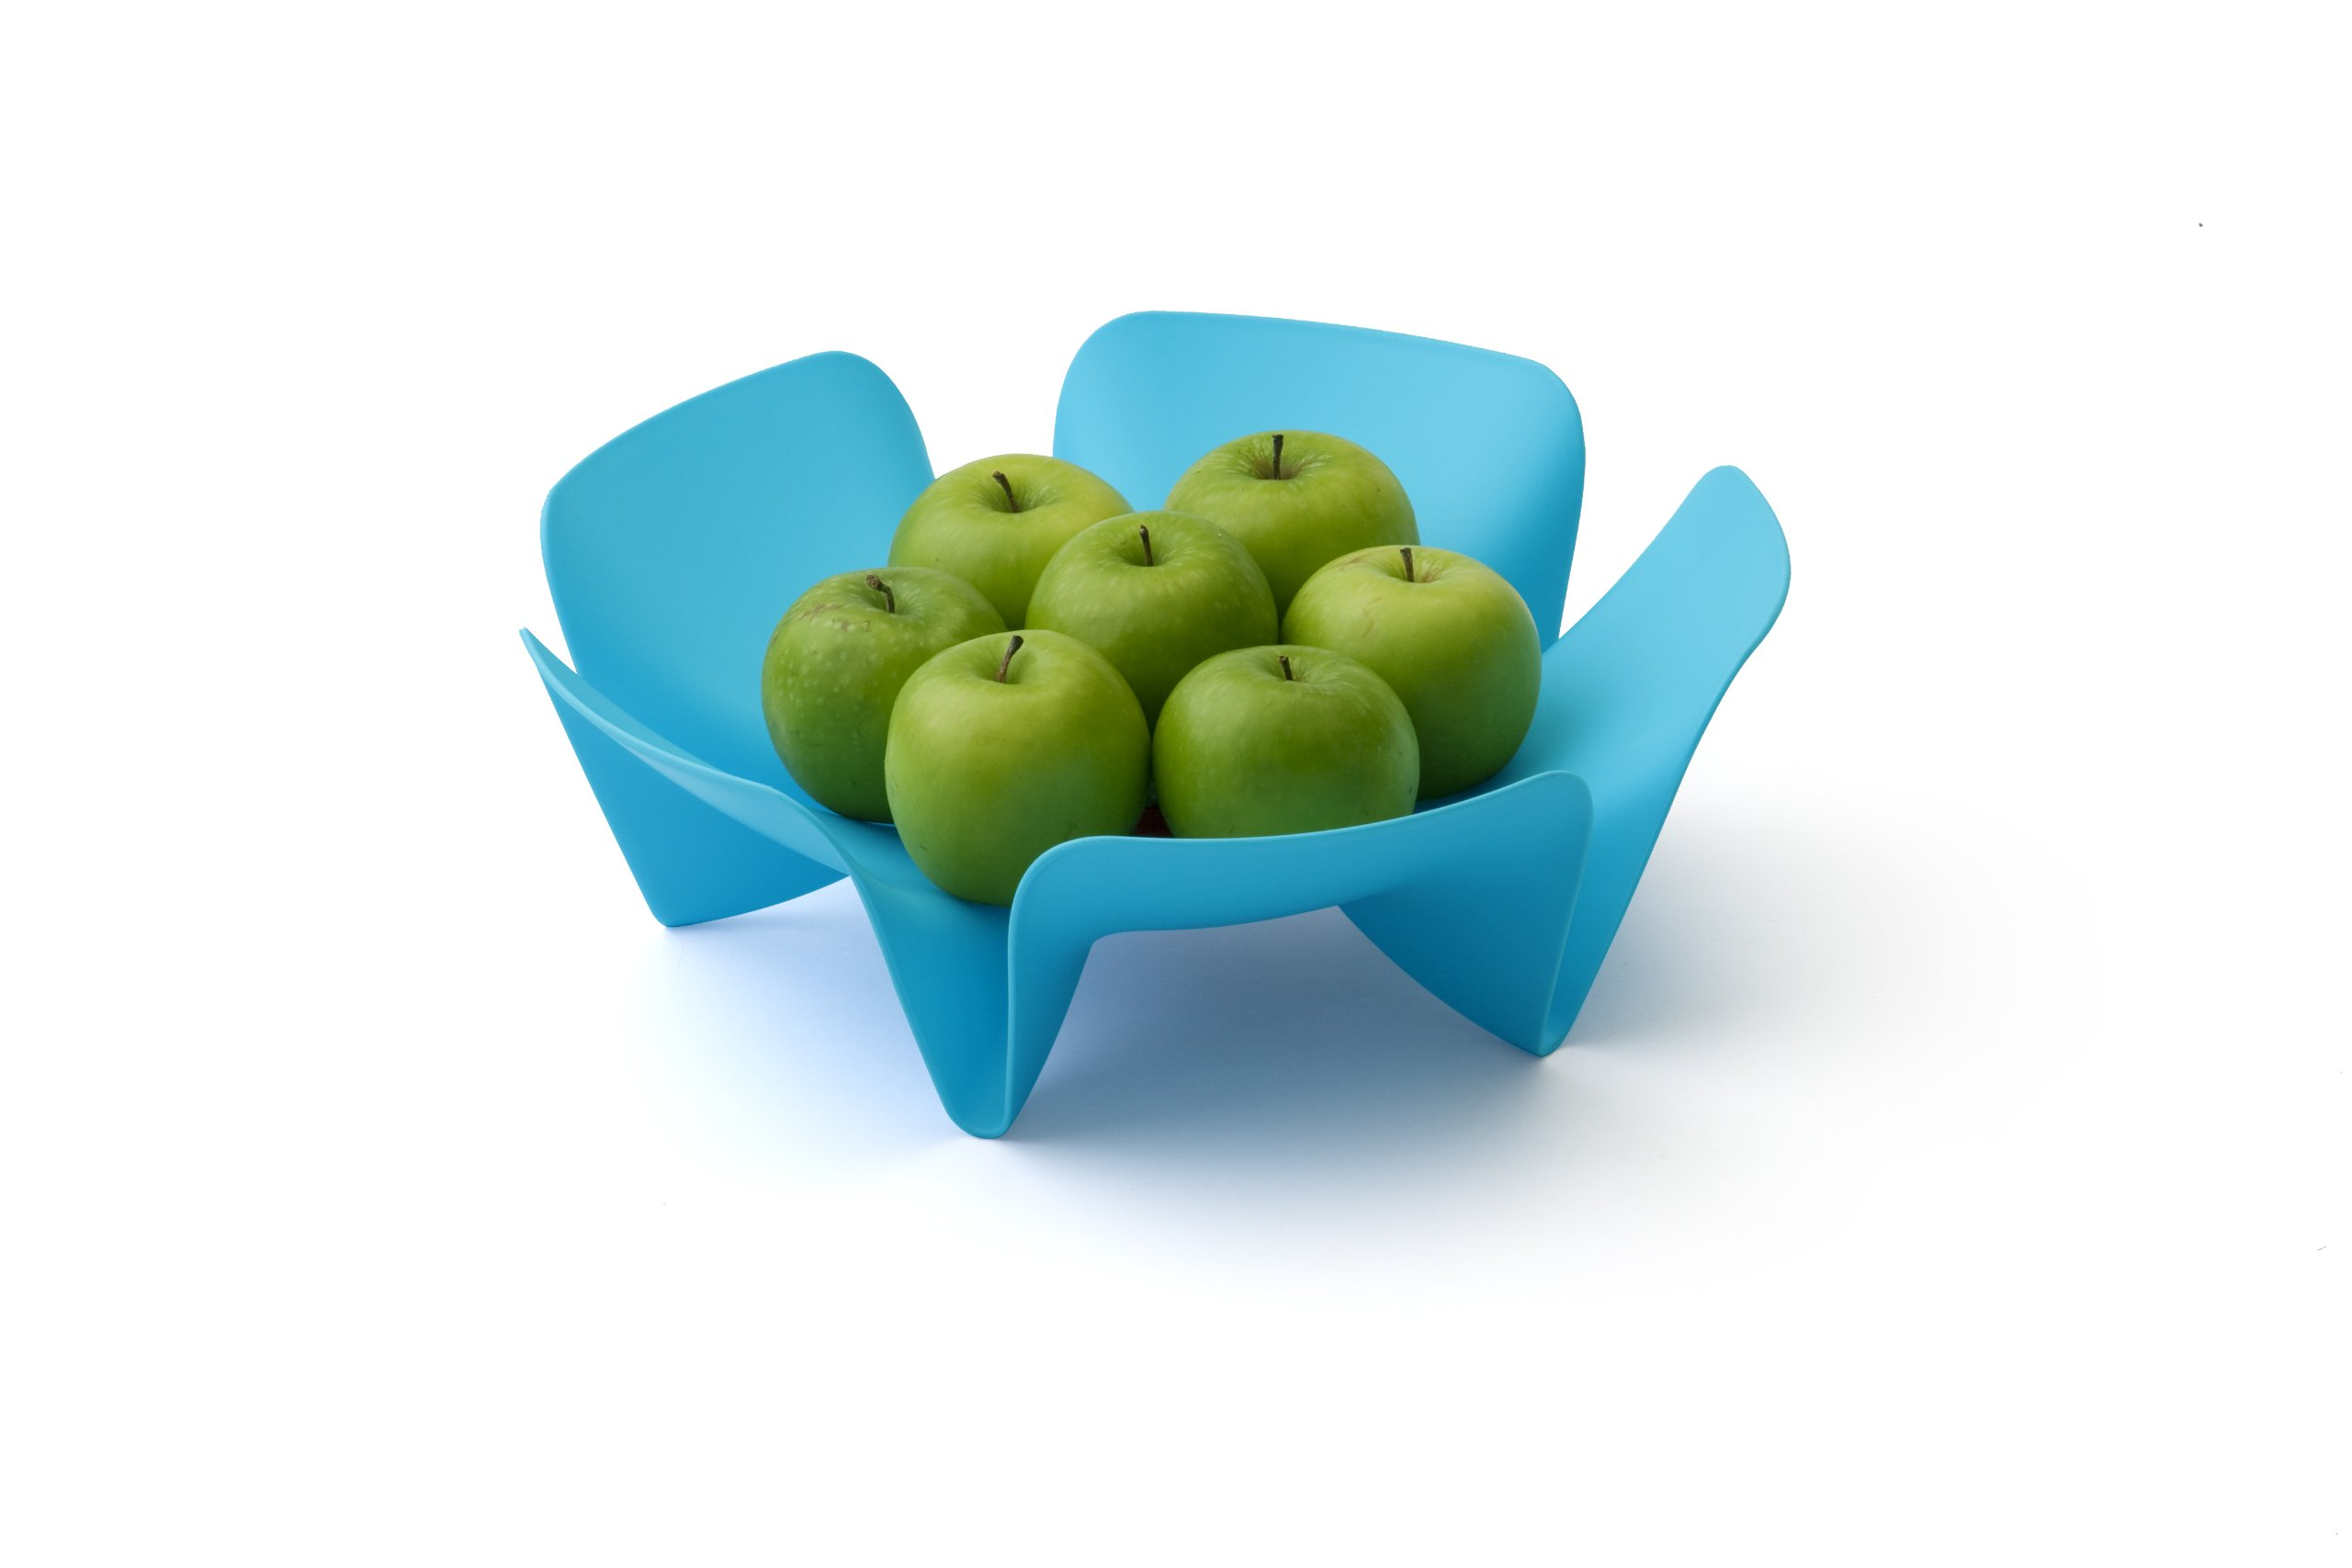 Qualy Flower Fruit Tray Blue by Qualy (Image #2)